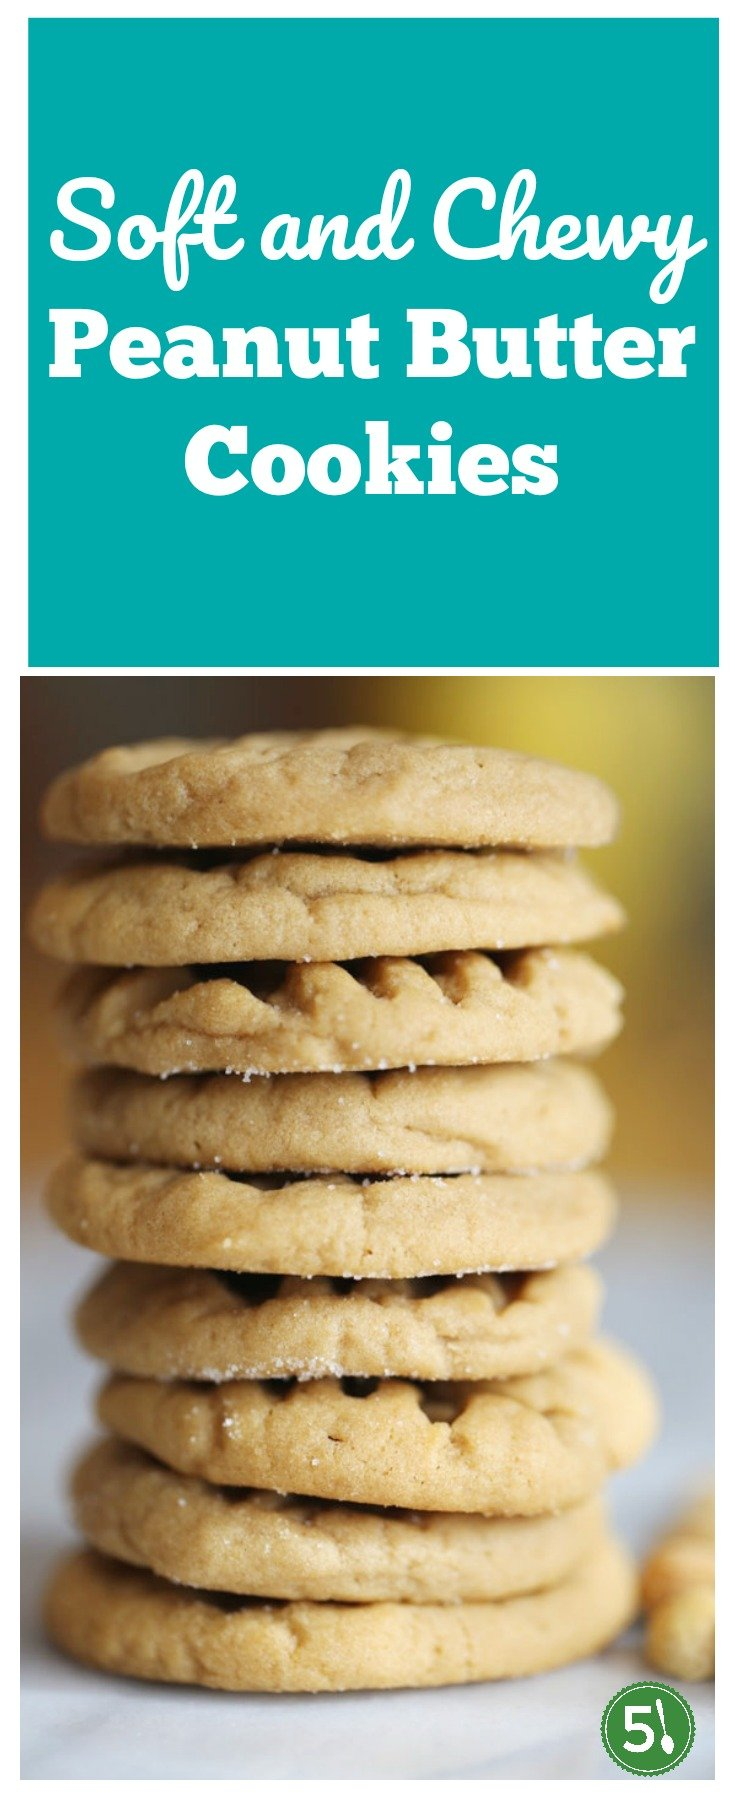 Peanut Butter cookies that are soft, chewy and slightly crispy on top are the best.  This peanut butter cookie recipe is easy to throw together and produces the perfect cookie.